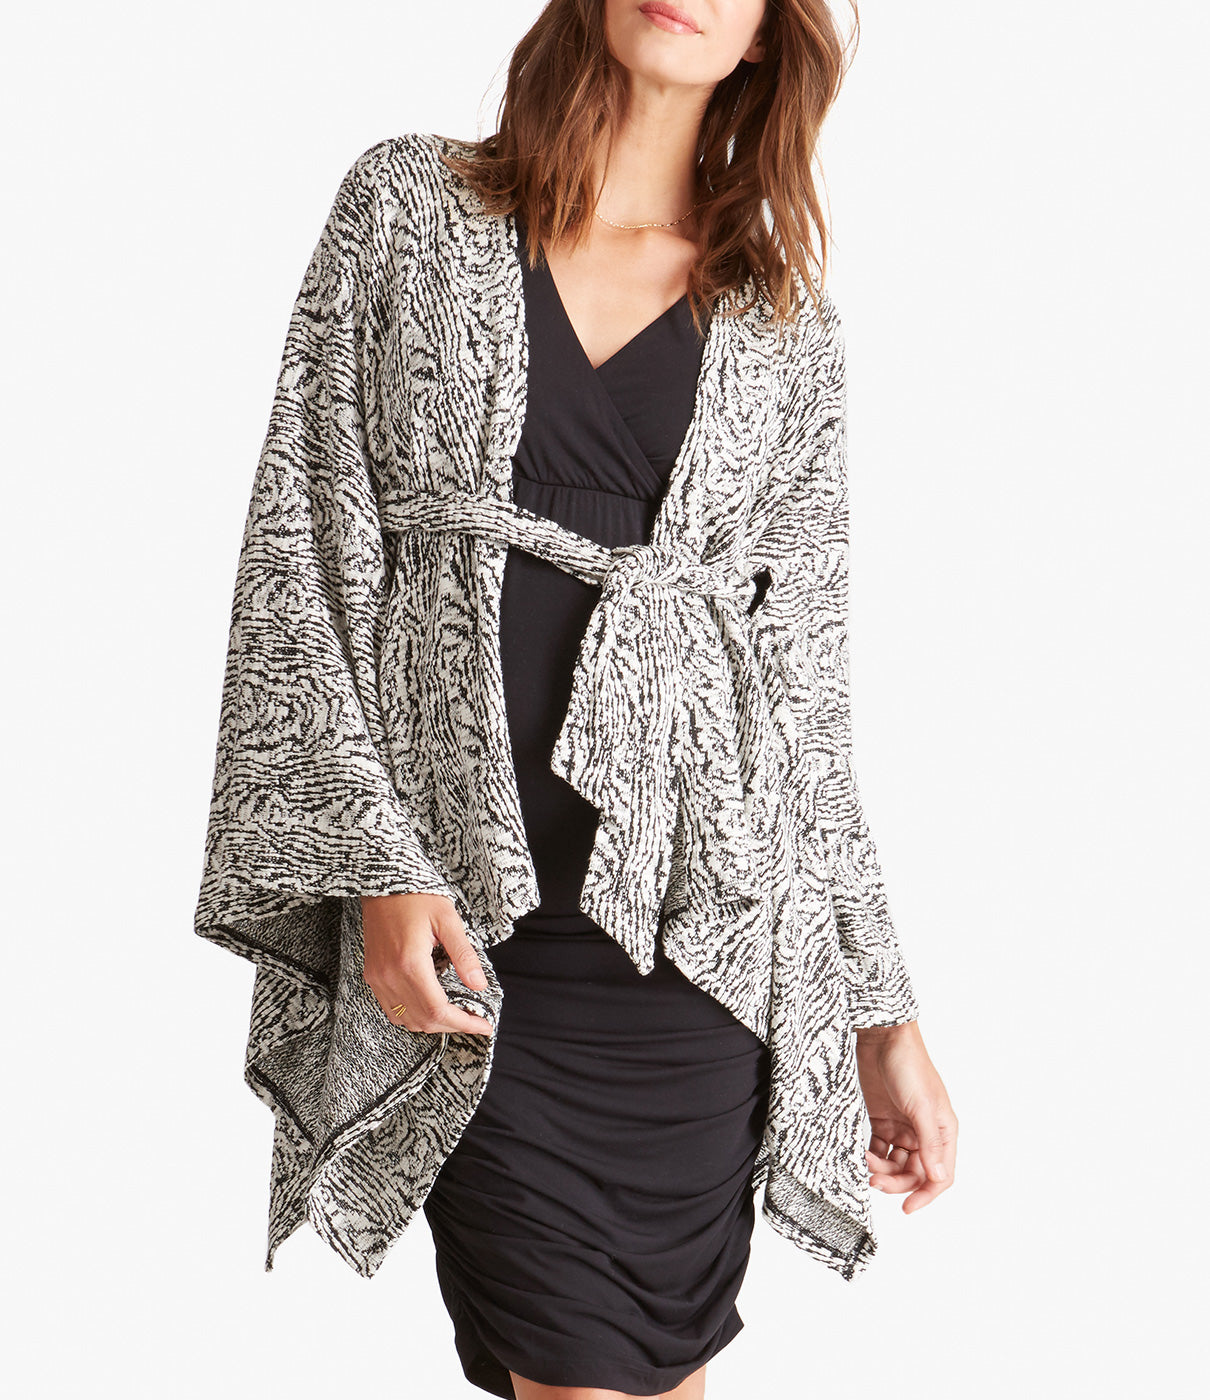 Fashion + FunctionEasy and versatile wear from day to night and a relaxed drape flatters all silhouettes.